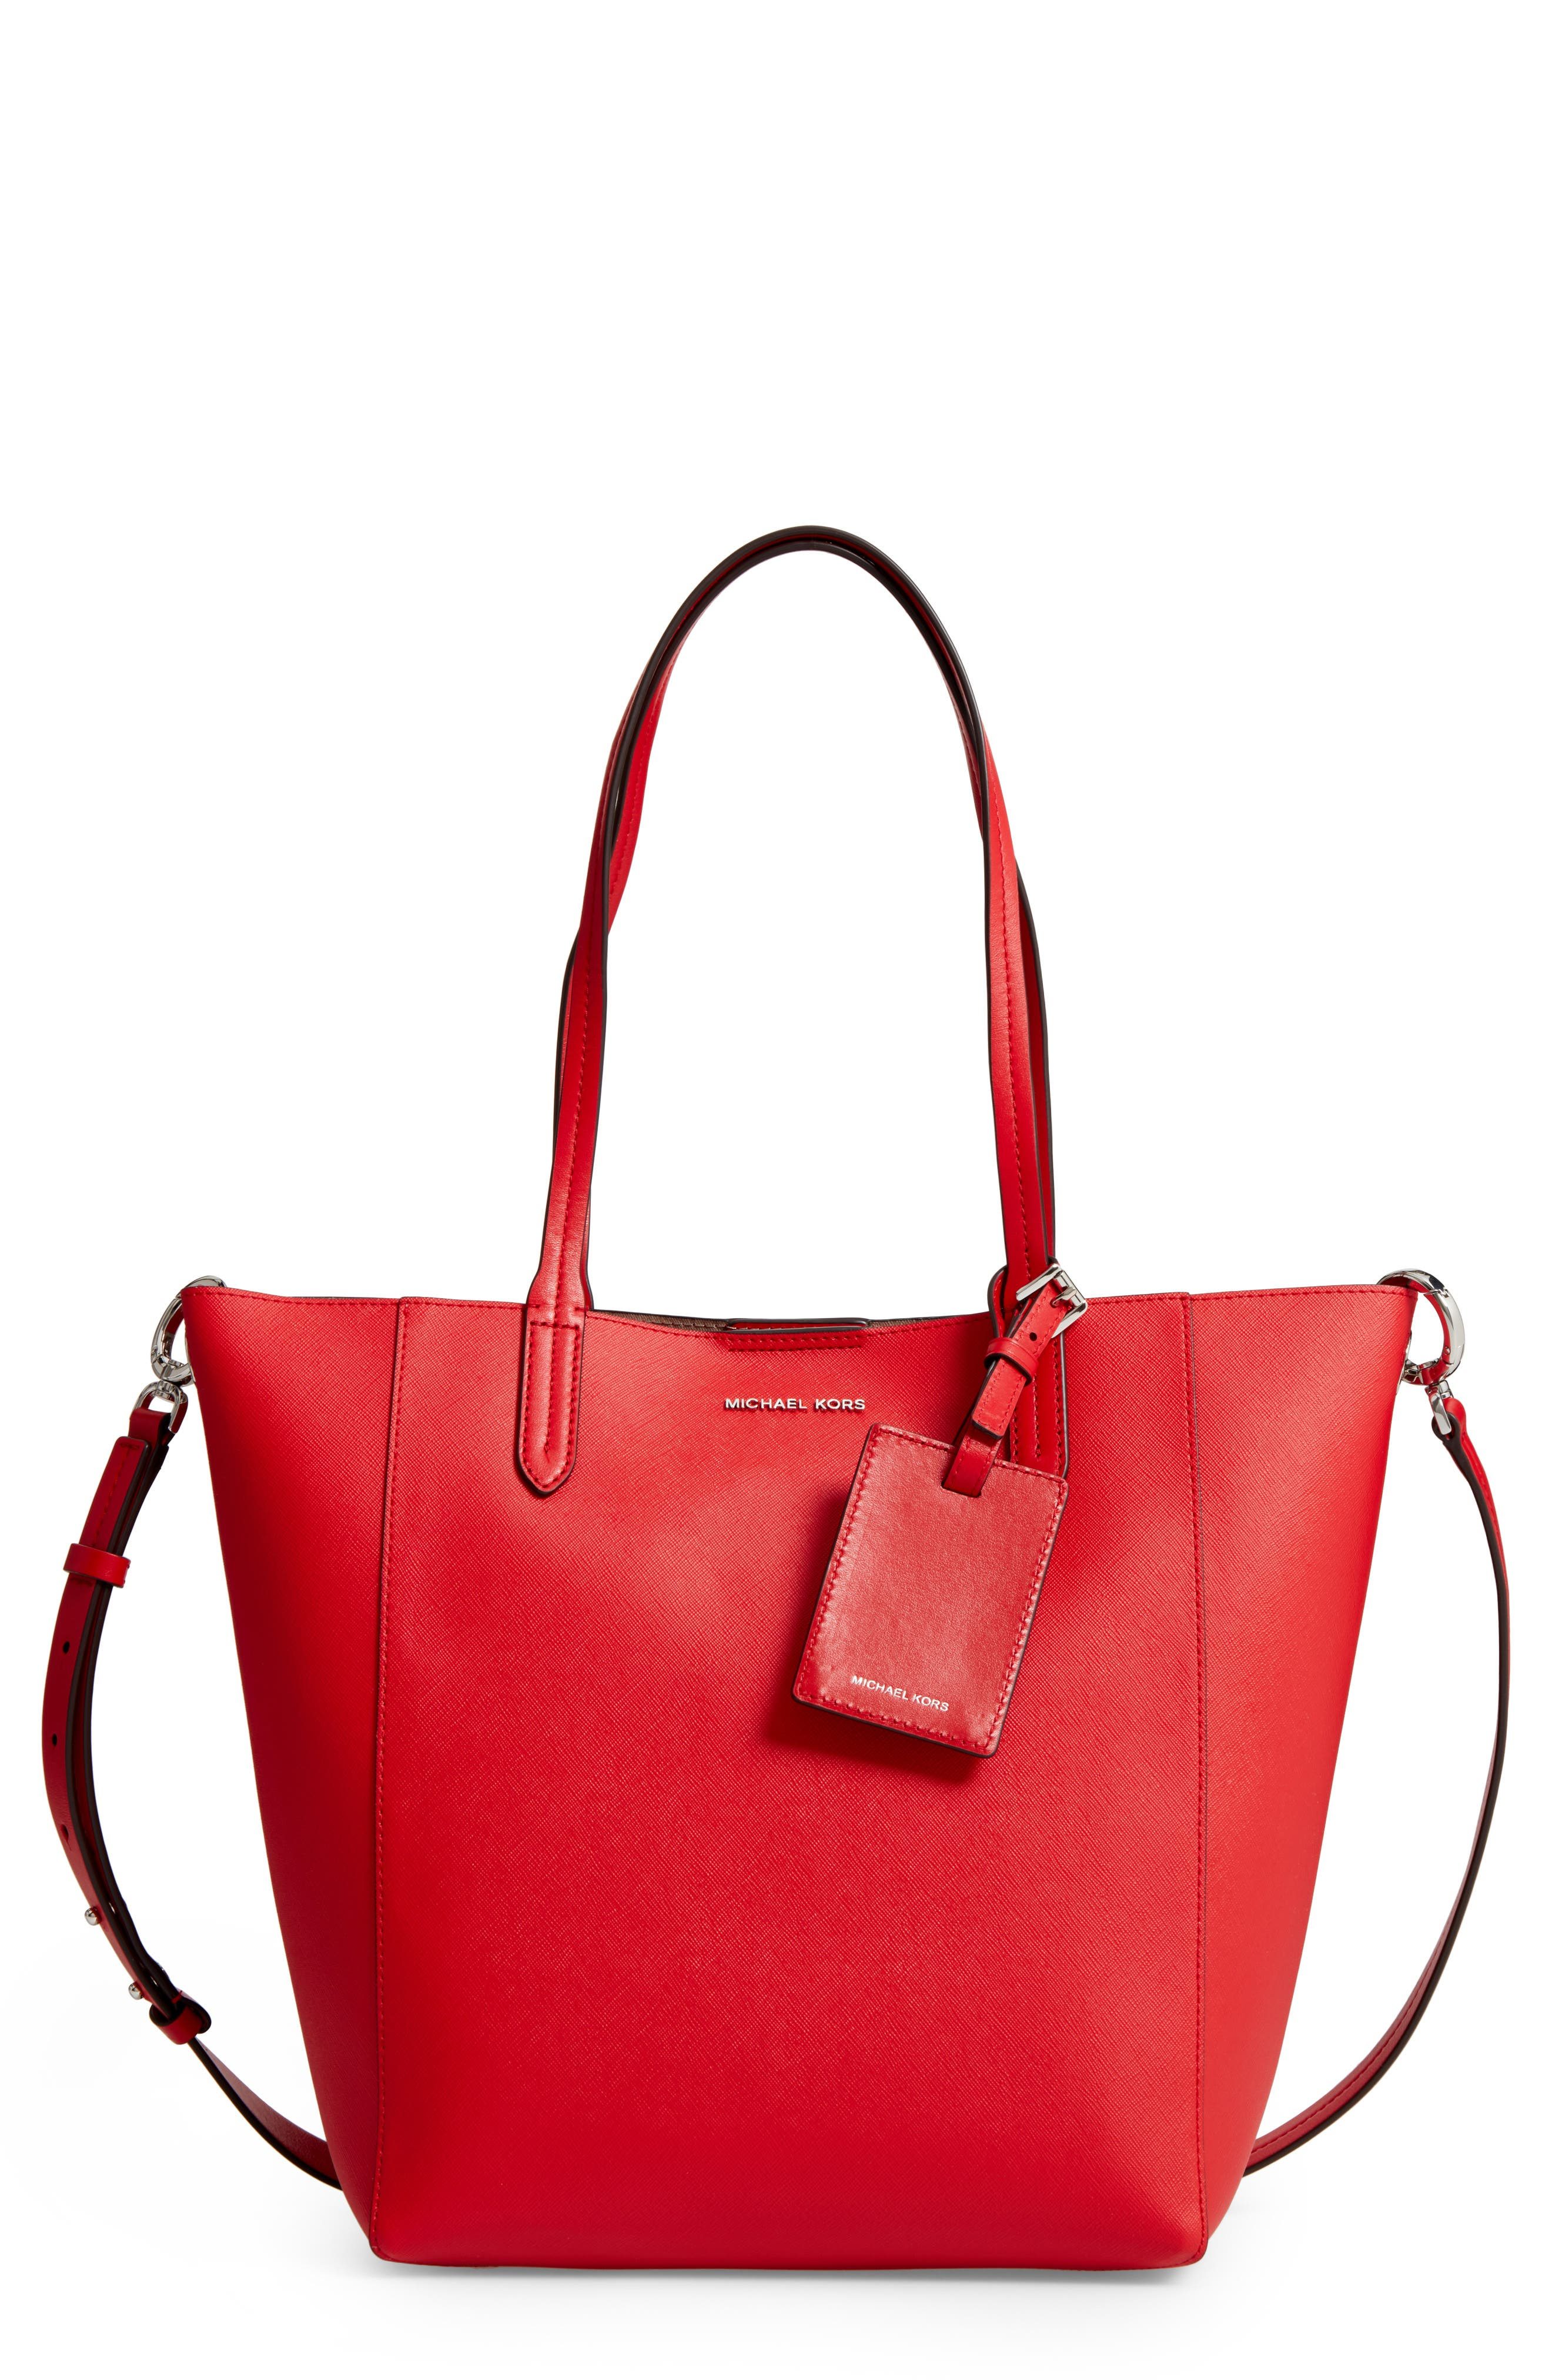 MICHAEL Michael Kors Penny Large Saffiano Convertible Leather Tote